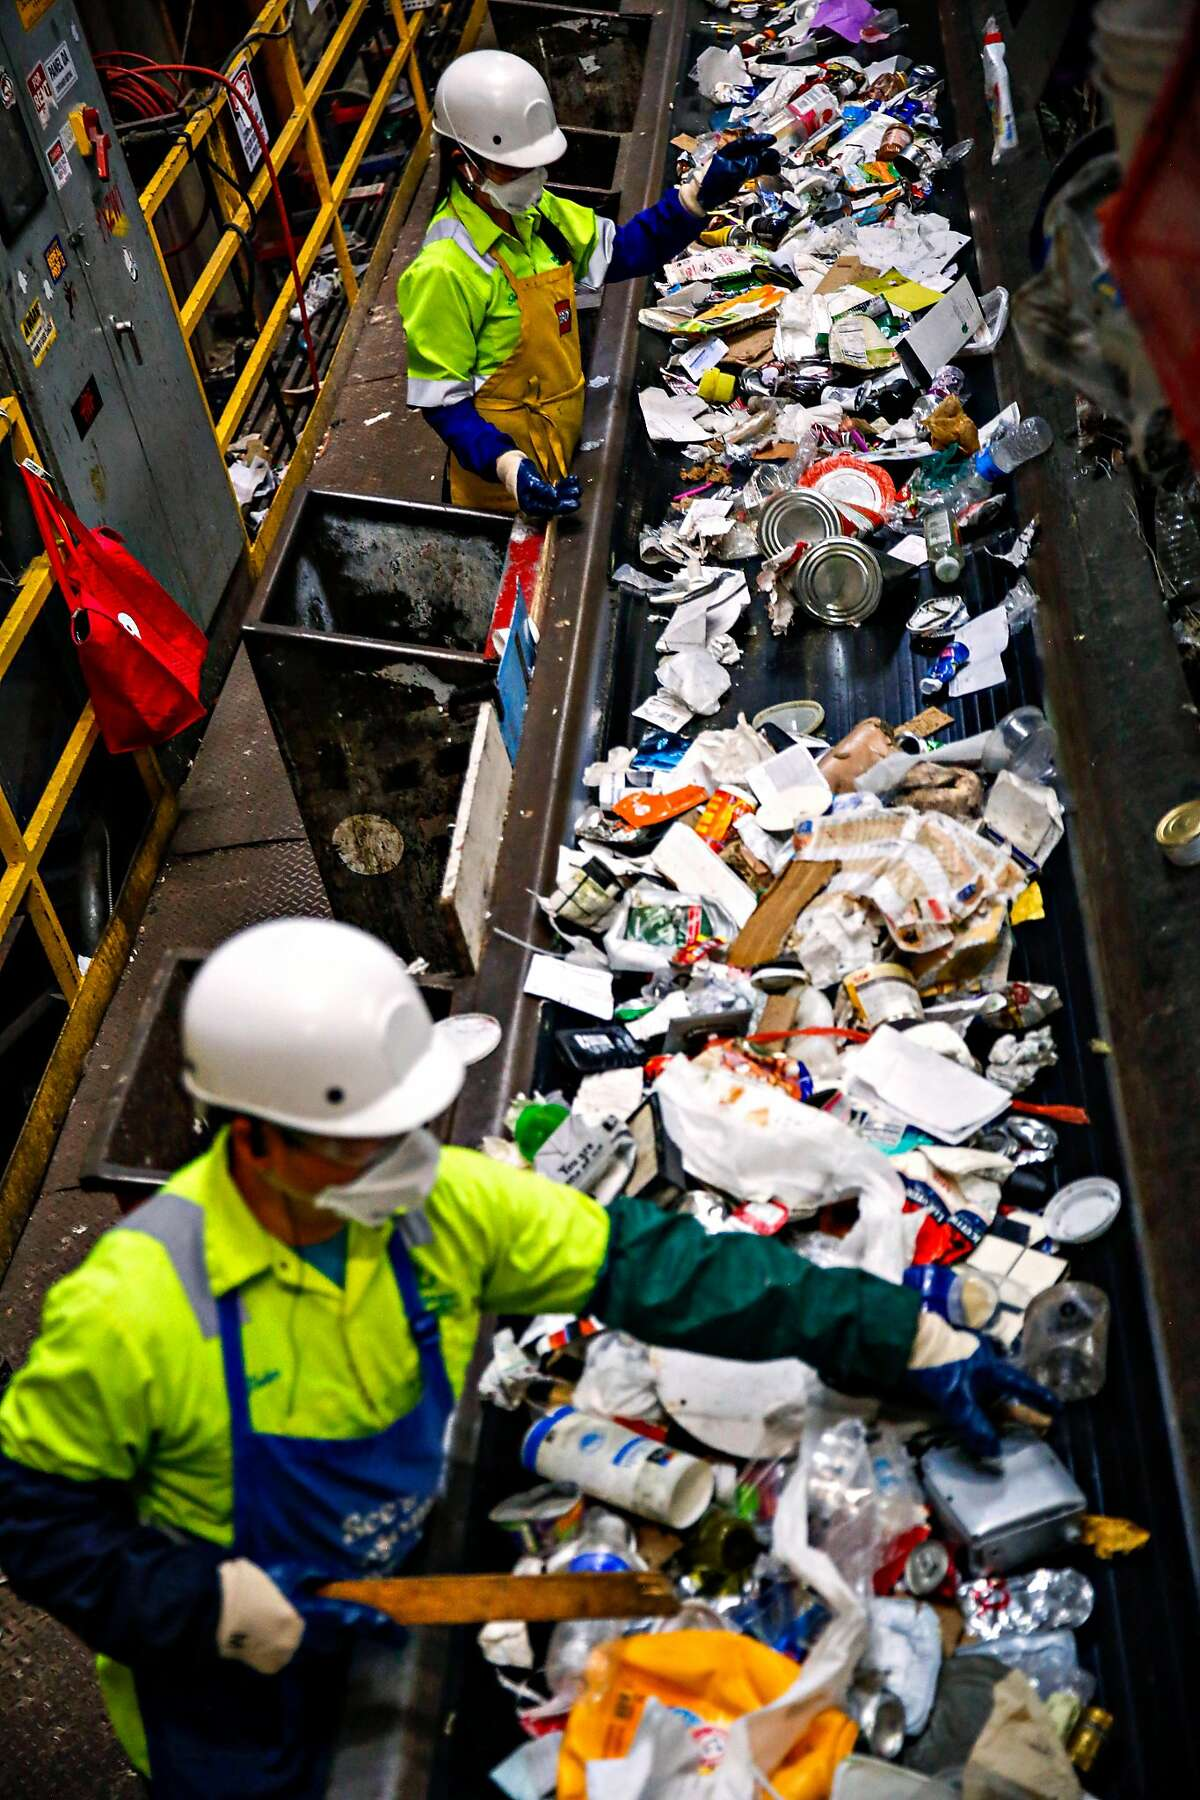 Sorters on the container line separate refuse by material for recycling at Recology's Recycle Central on Tuesday June 11, 2019 in San Fransisco, Calif.